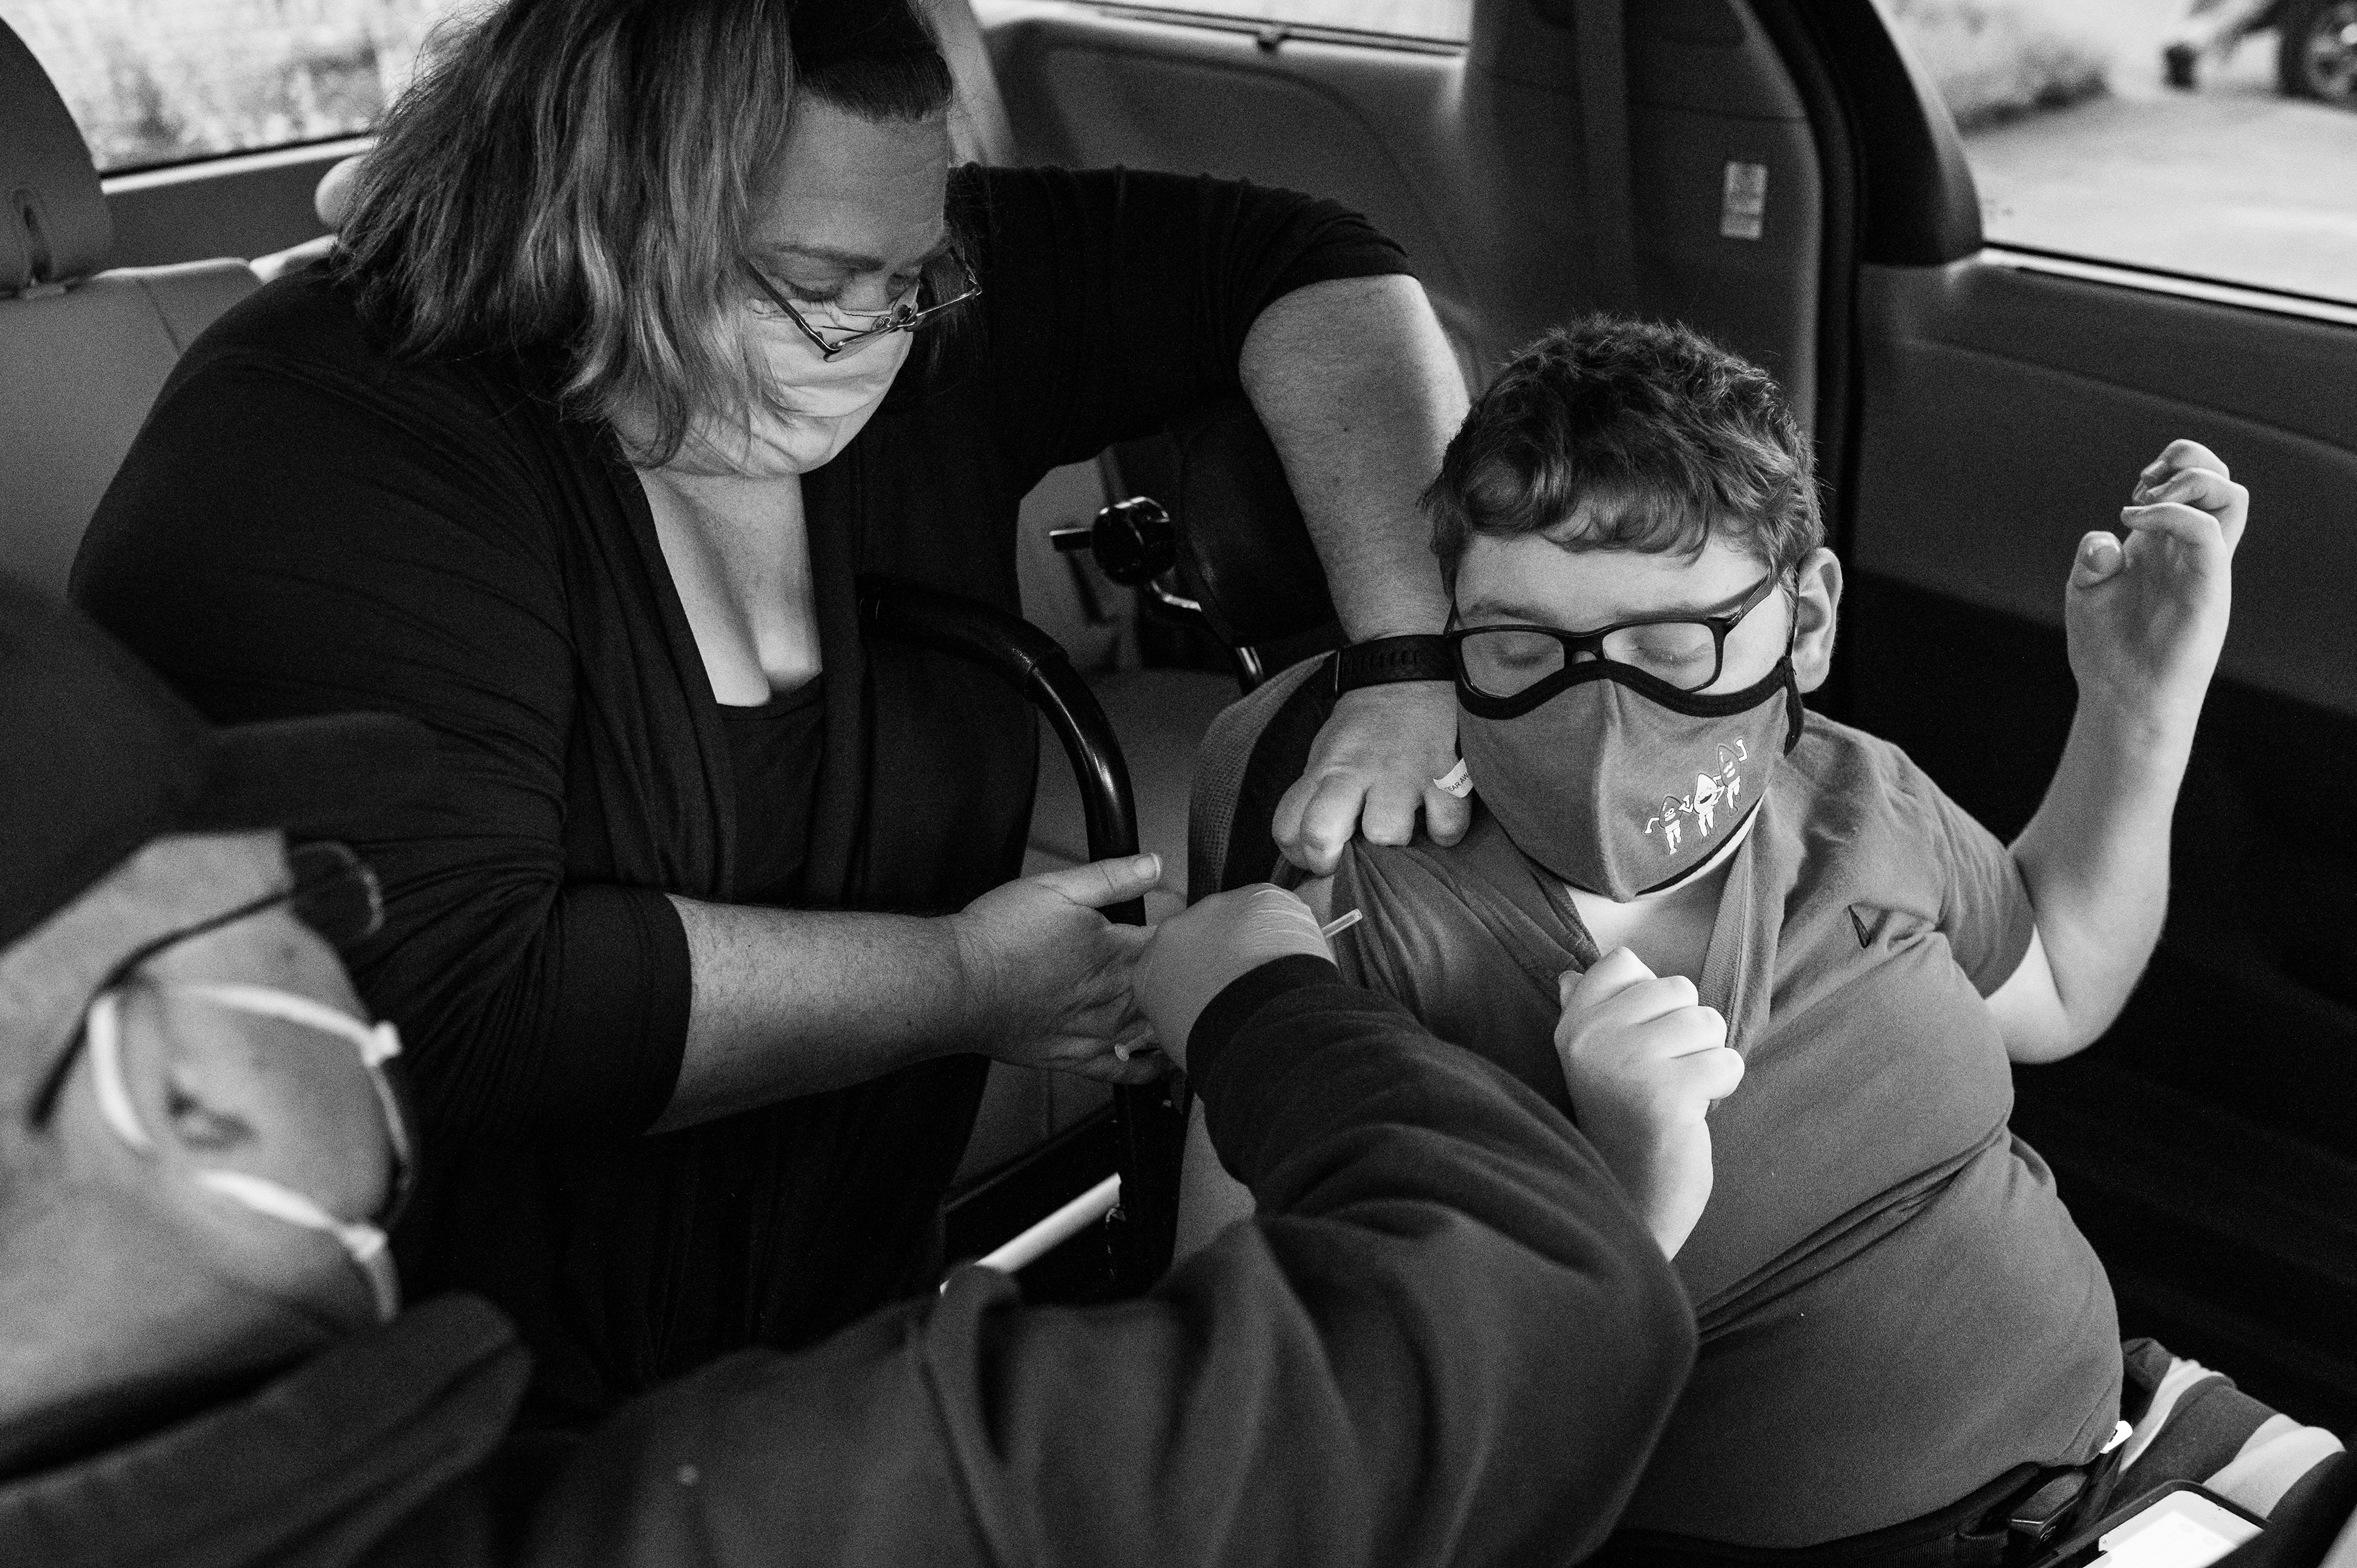 Allison Bungard helps her son Andrew, 13, who has cerebral palsy and Factor V Leiden thrombophilia, receive his shot at a vaccine clinic in Charleston.